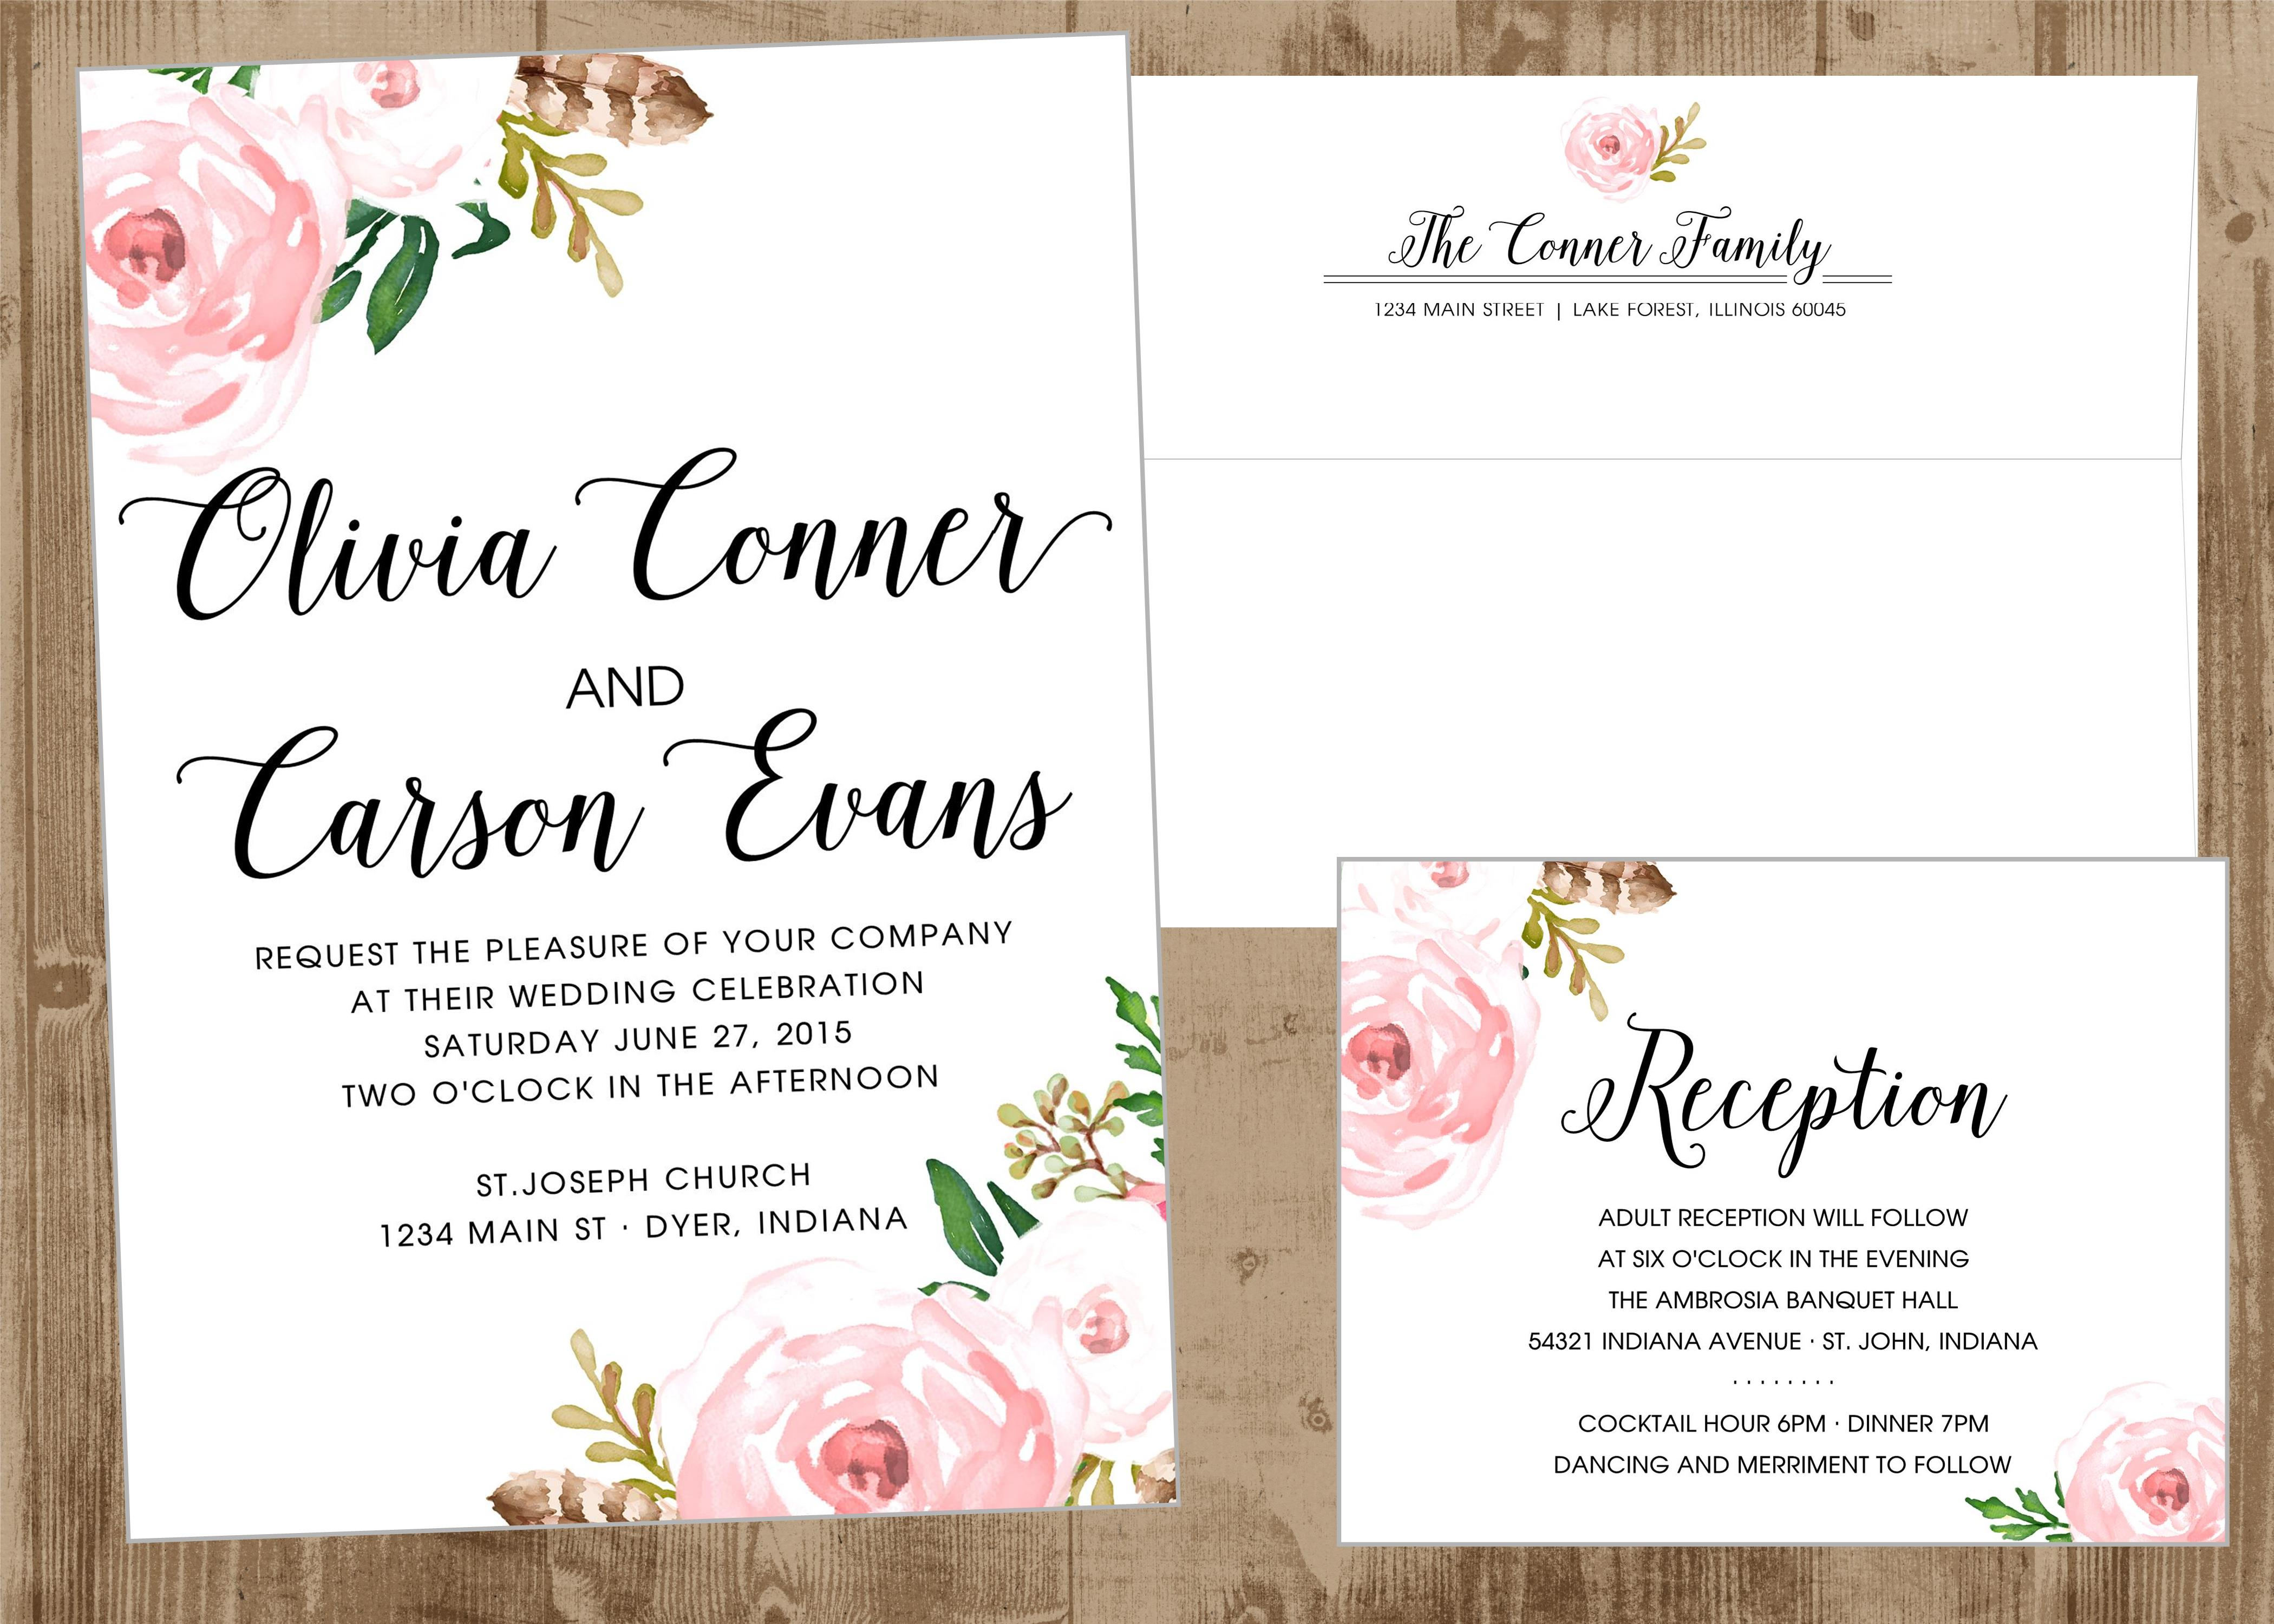 Printable Wedding Invitation Suite with Vintage Pink Flowers | The ...